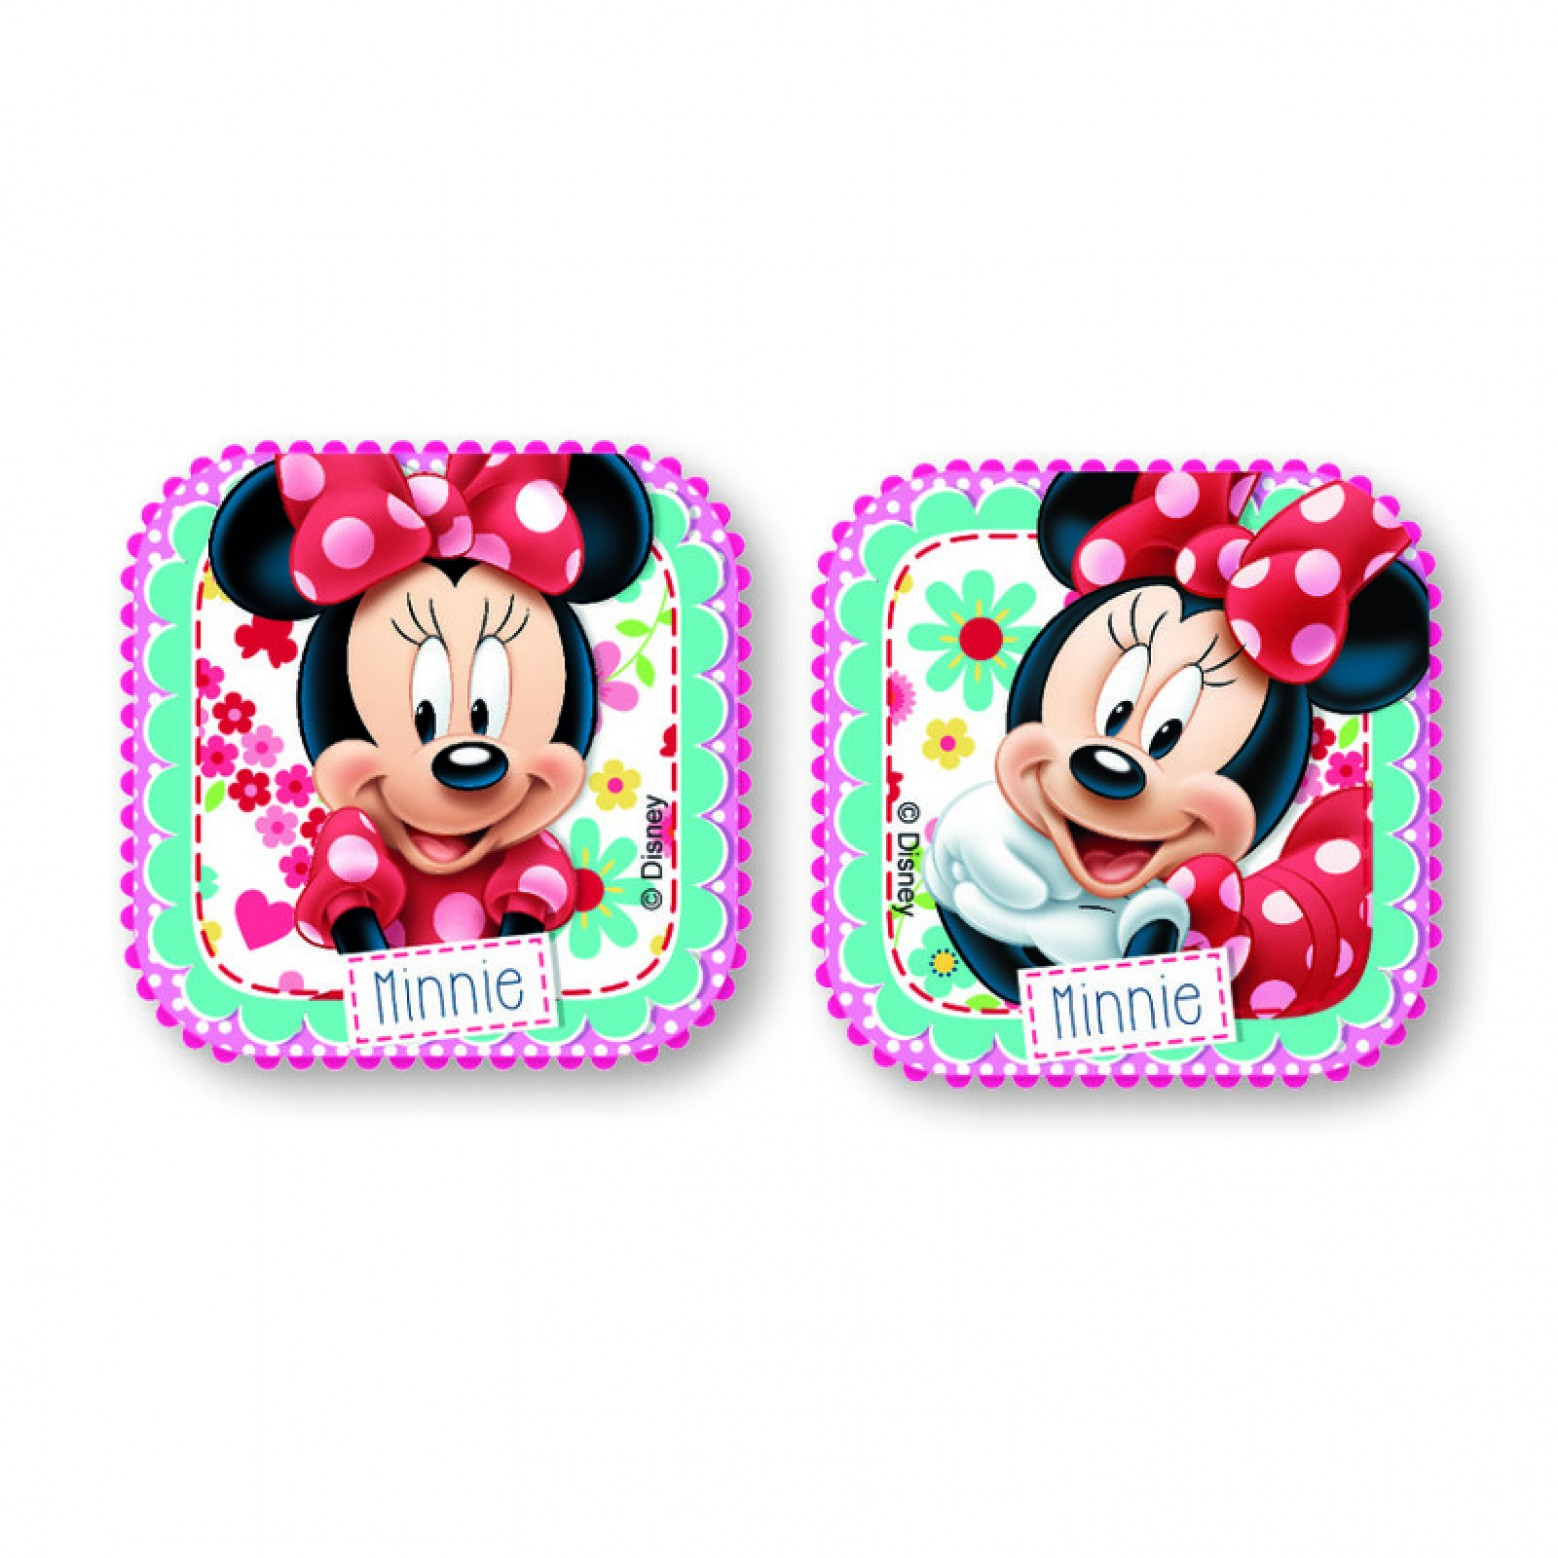 Minnie Mouse lade/kast knoppen 2-delig